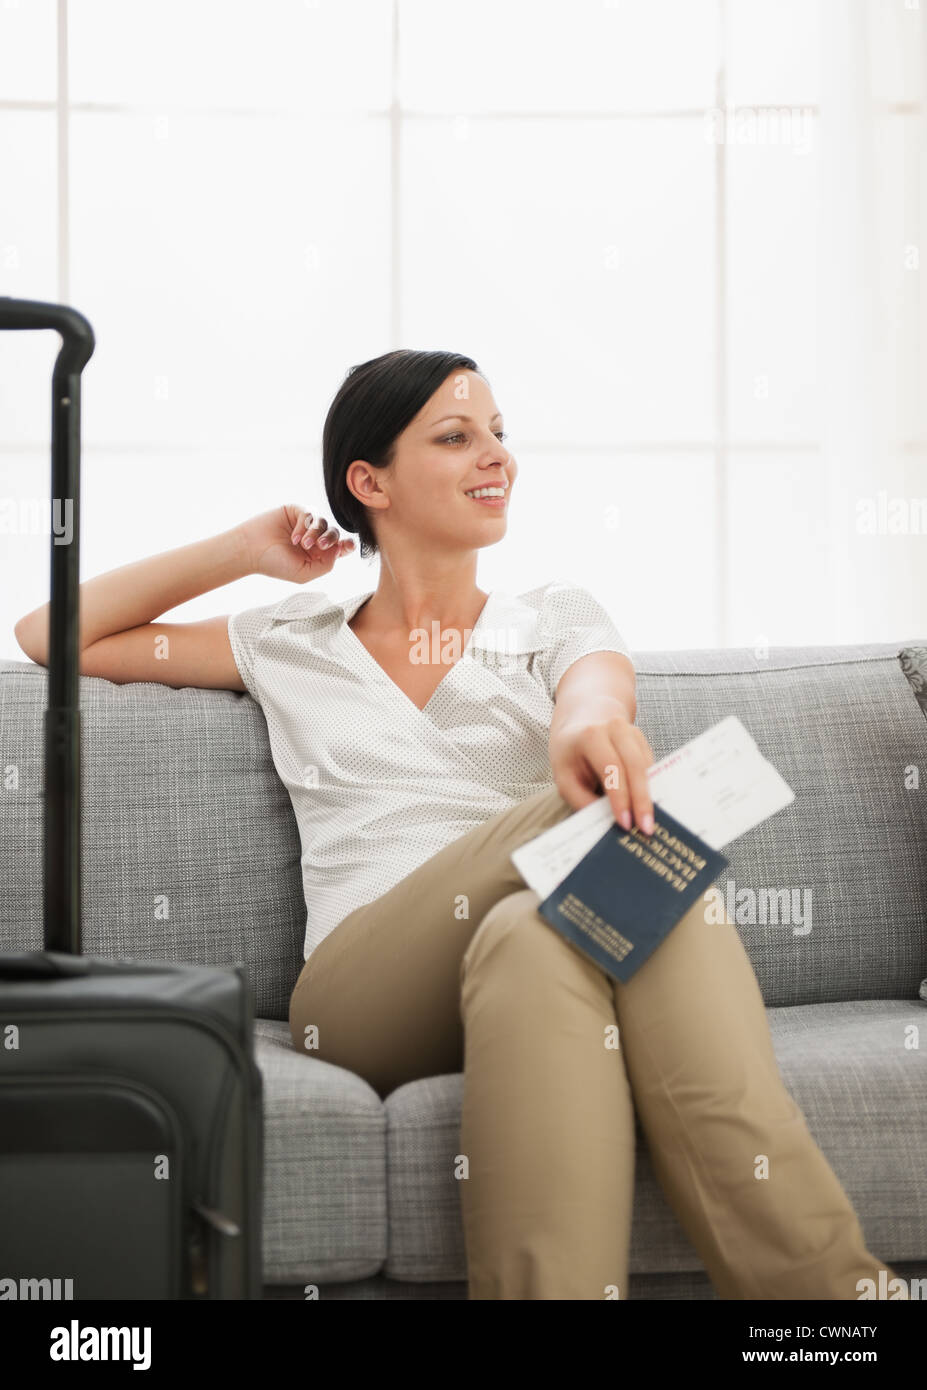 Dreaming young woman with bag holding passport and air ticket - Stock Image